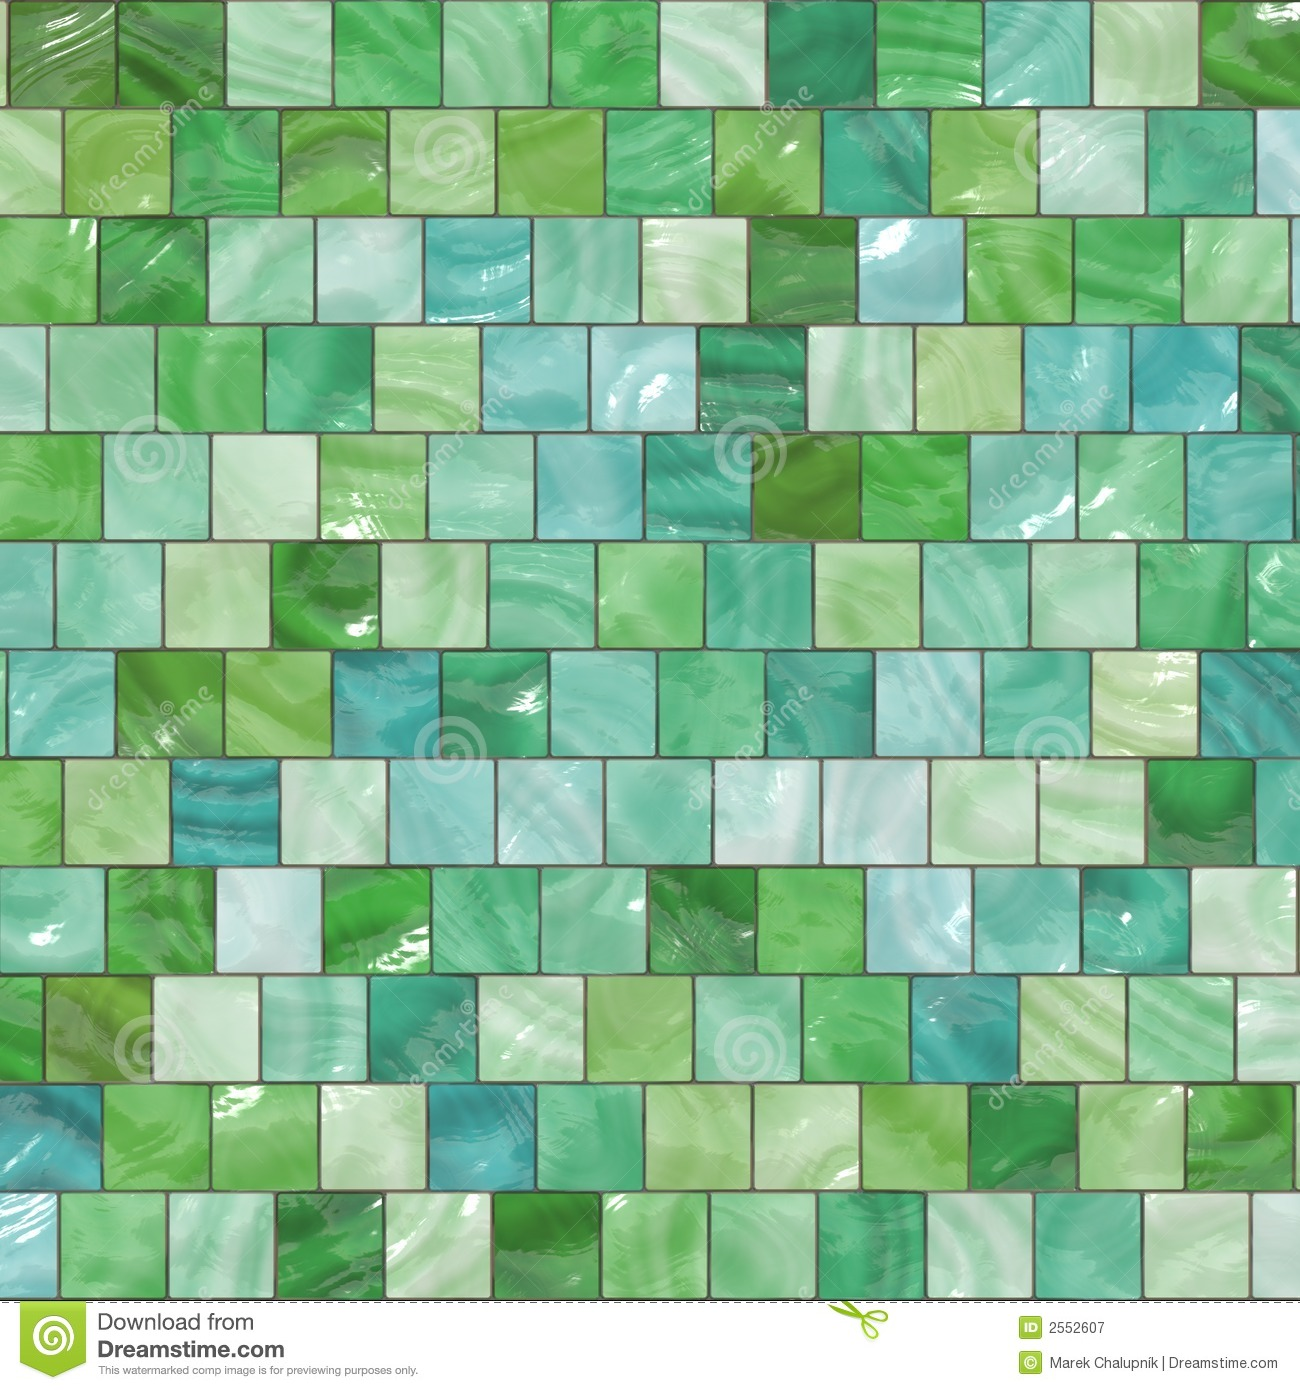 green mosaic tiles bathroom mosaic tile royalty free stock photography - Mosaic Tiles